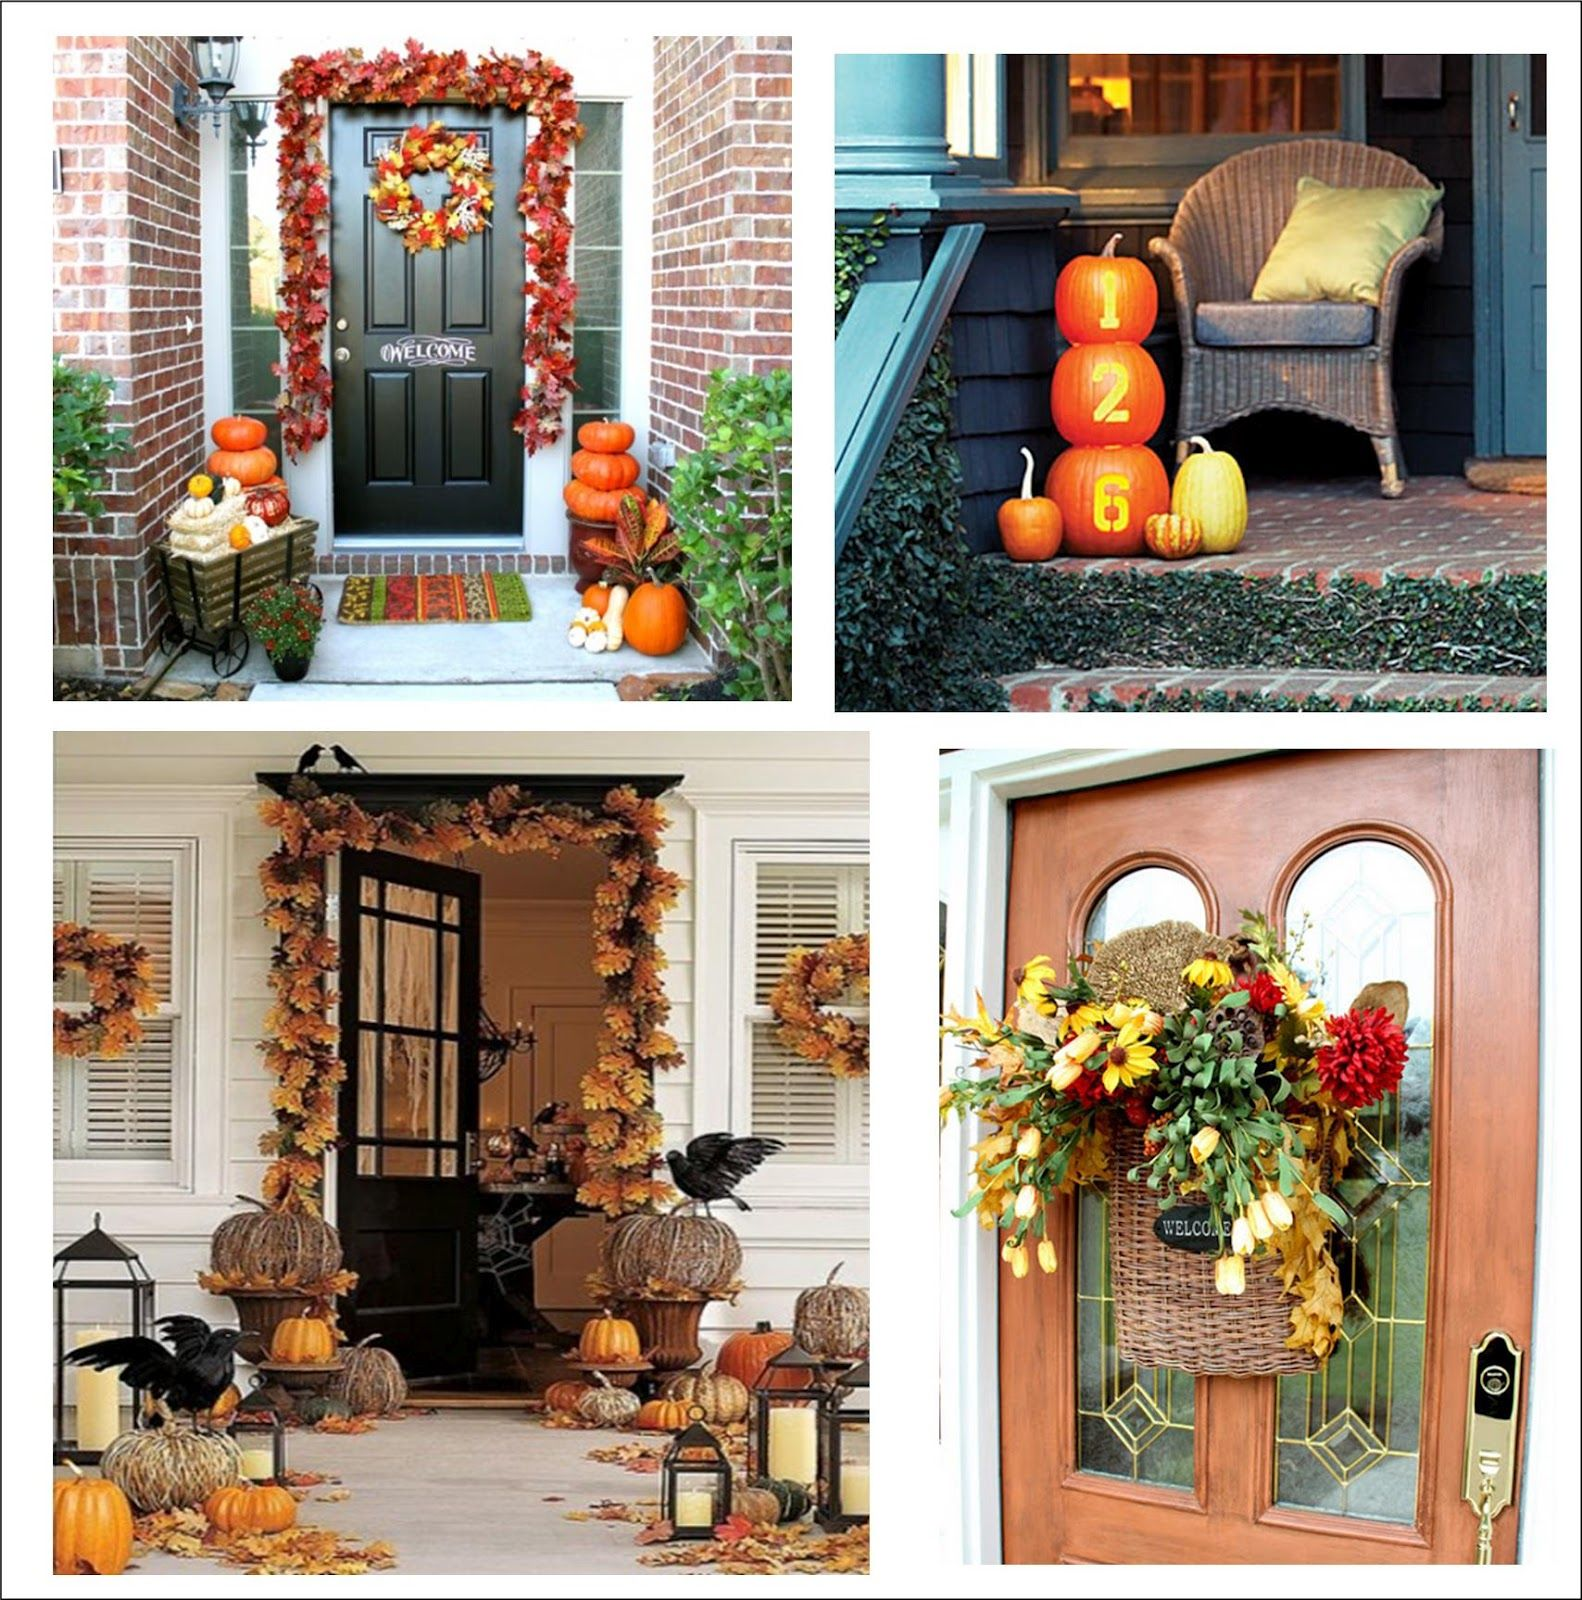 Halloween window decor ideas  itus written on the wall  fall porch decorating ideas  for